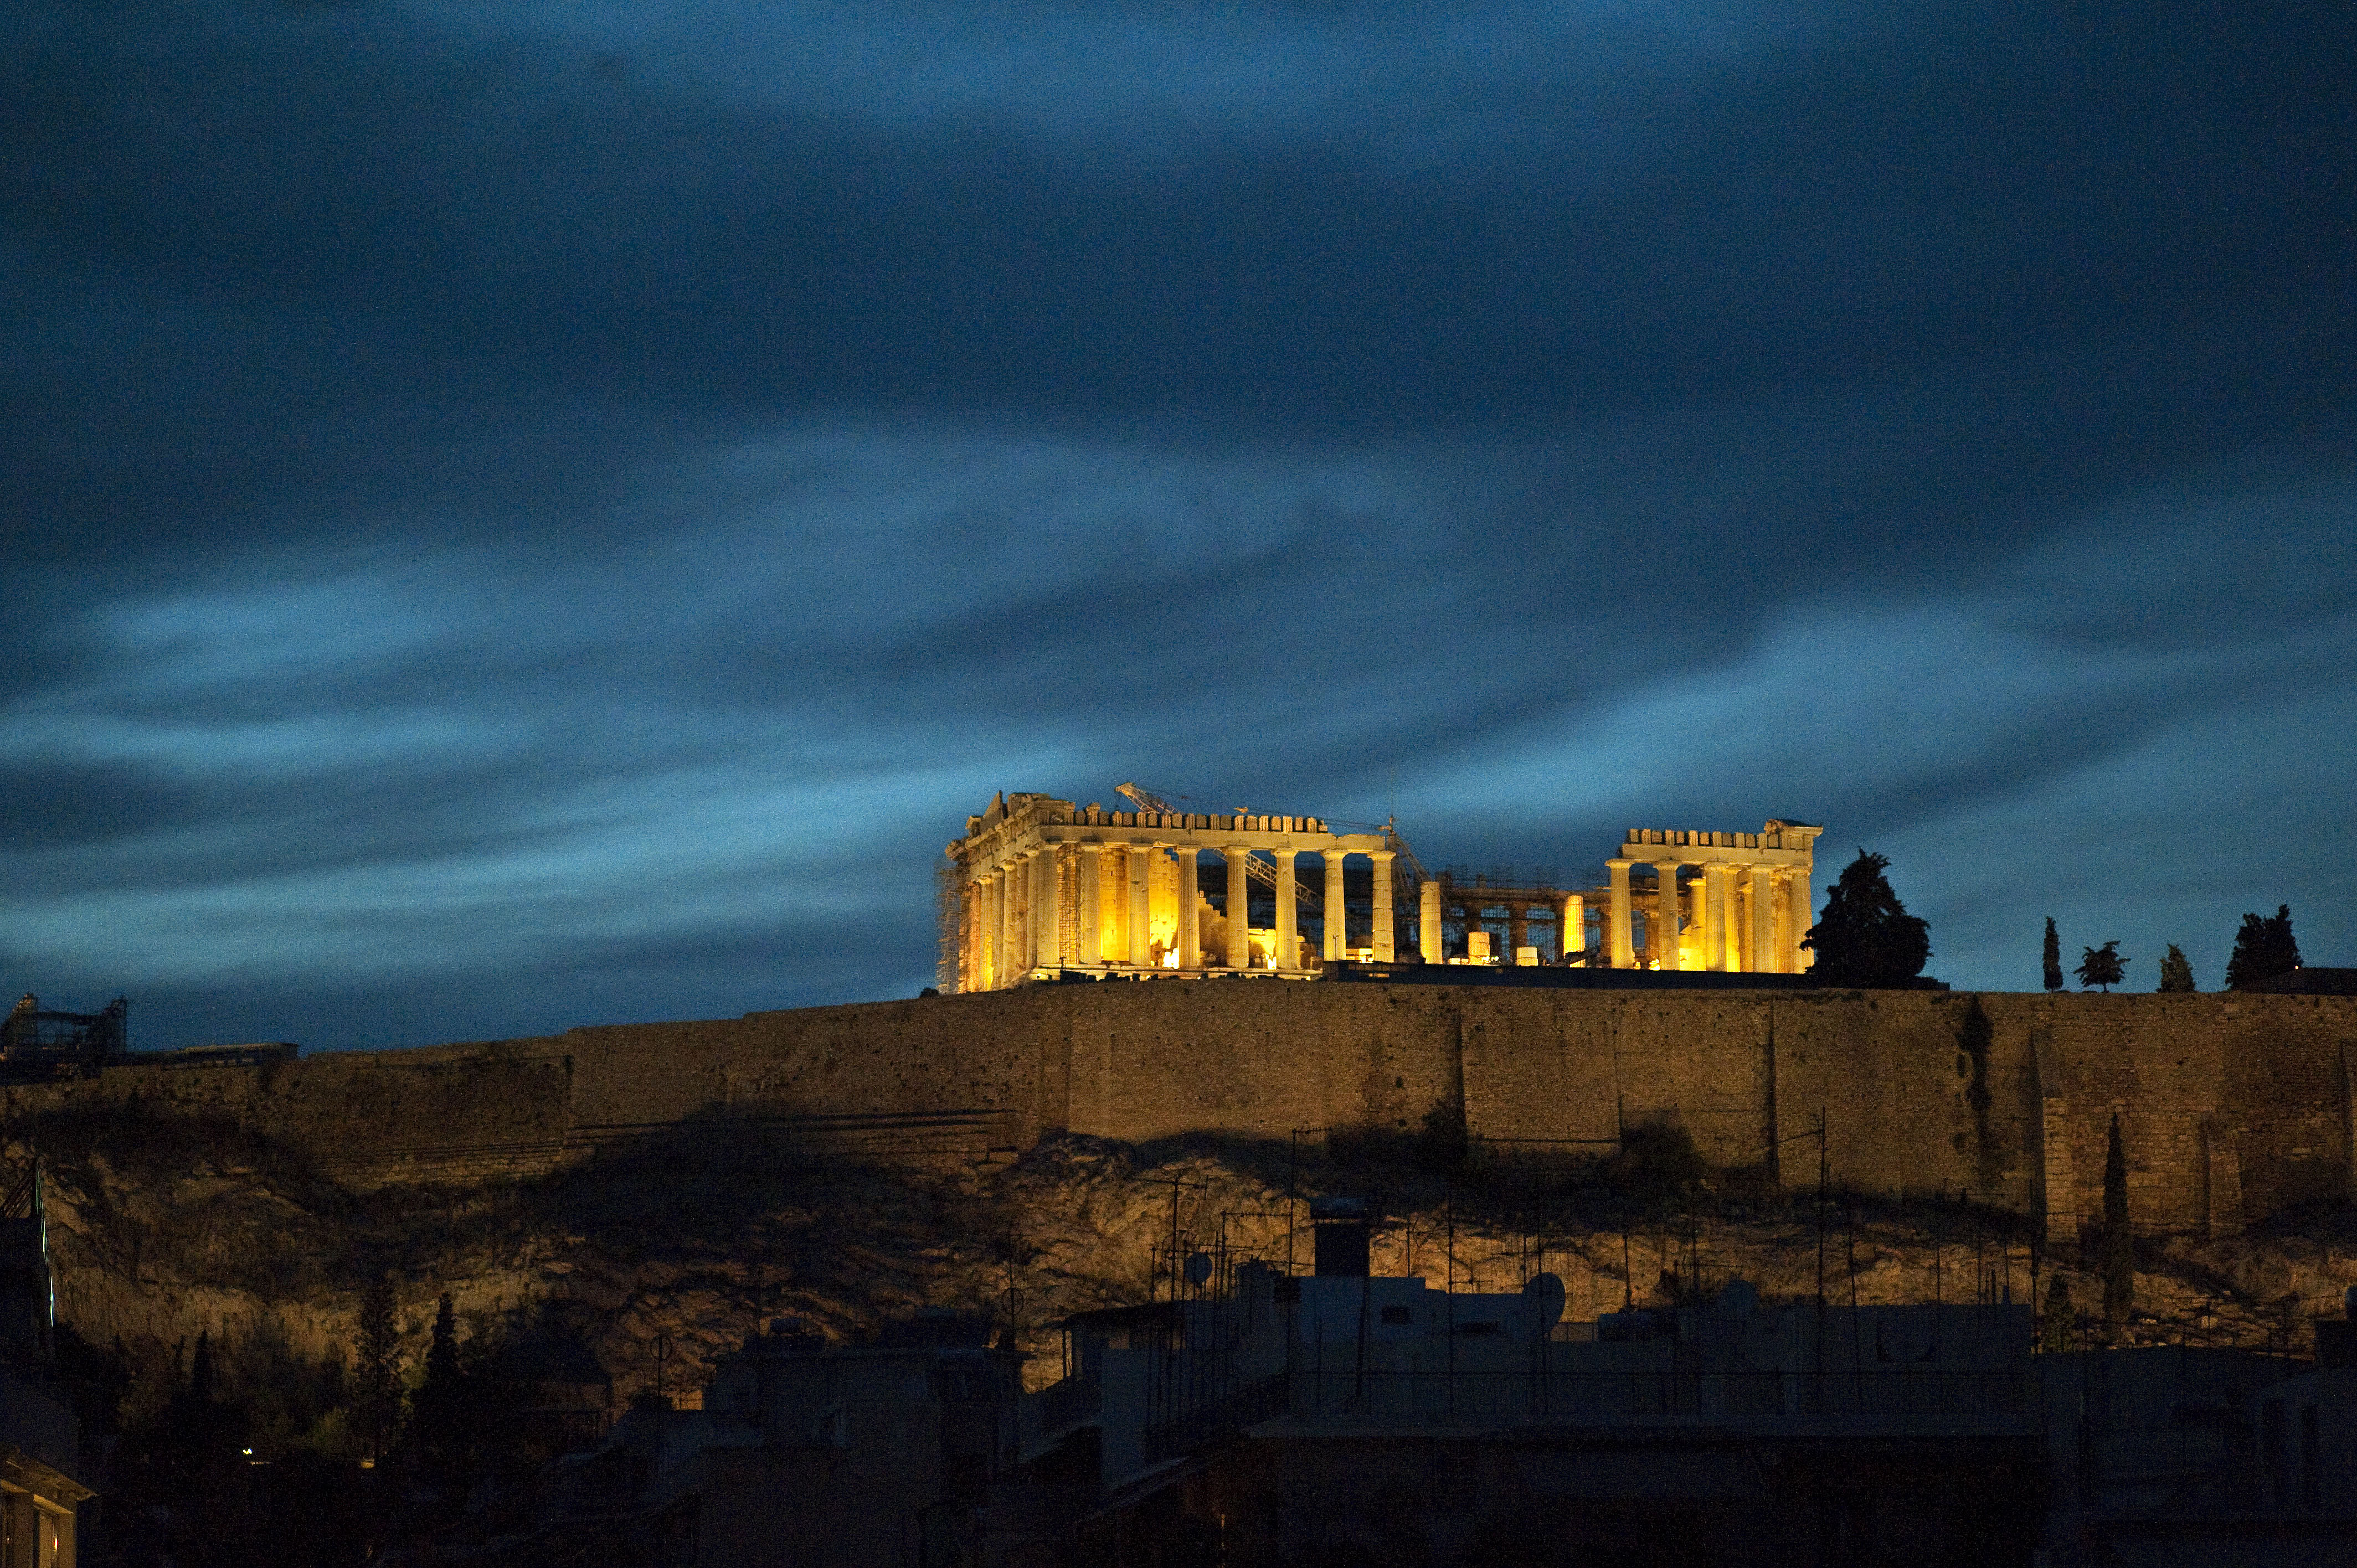 [Guest Post] Athens: An emerging startup scene in the midst of the Greek crisis